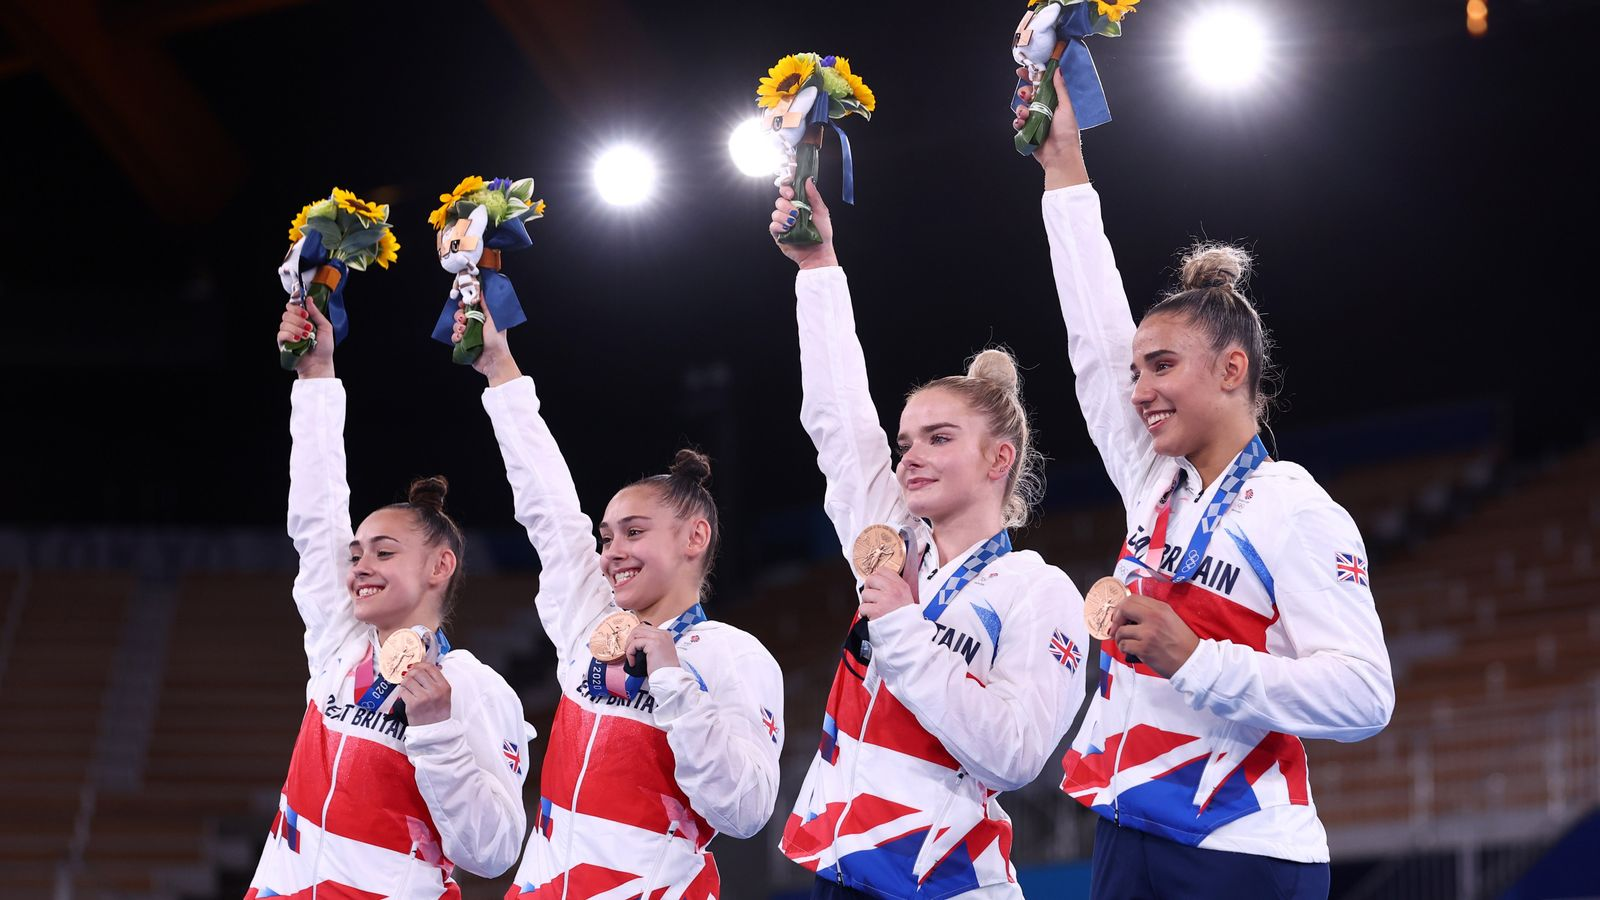 Tokyo Olympics: Team GB win bronze in women's team gymnastics for first time since 1928